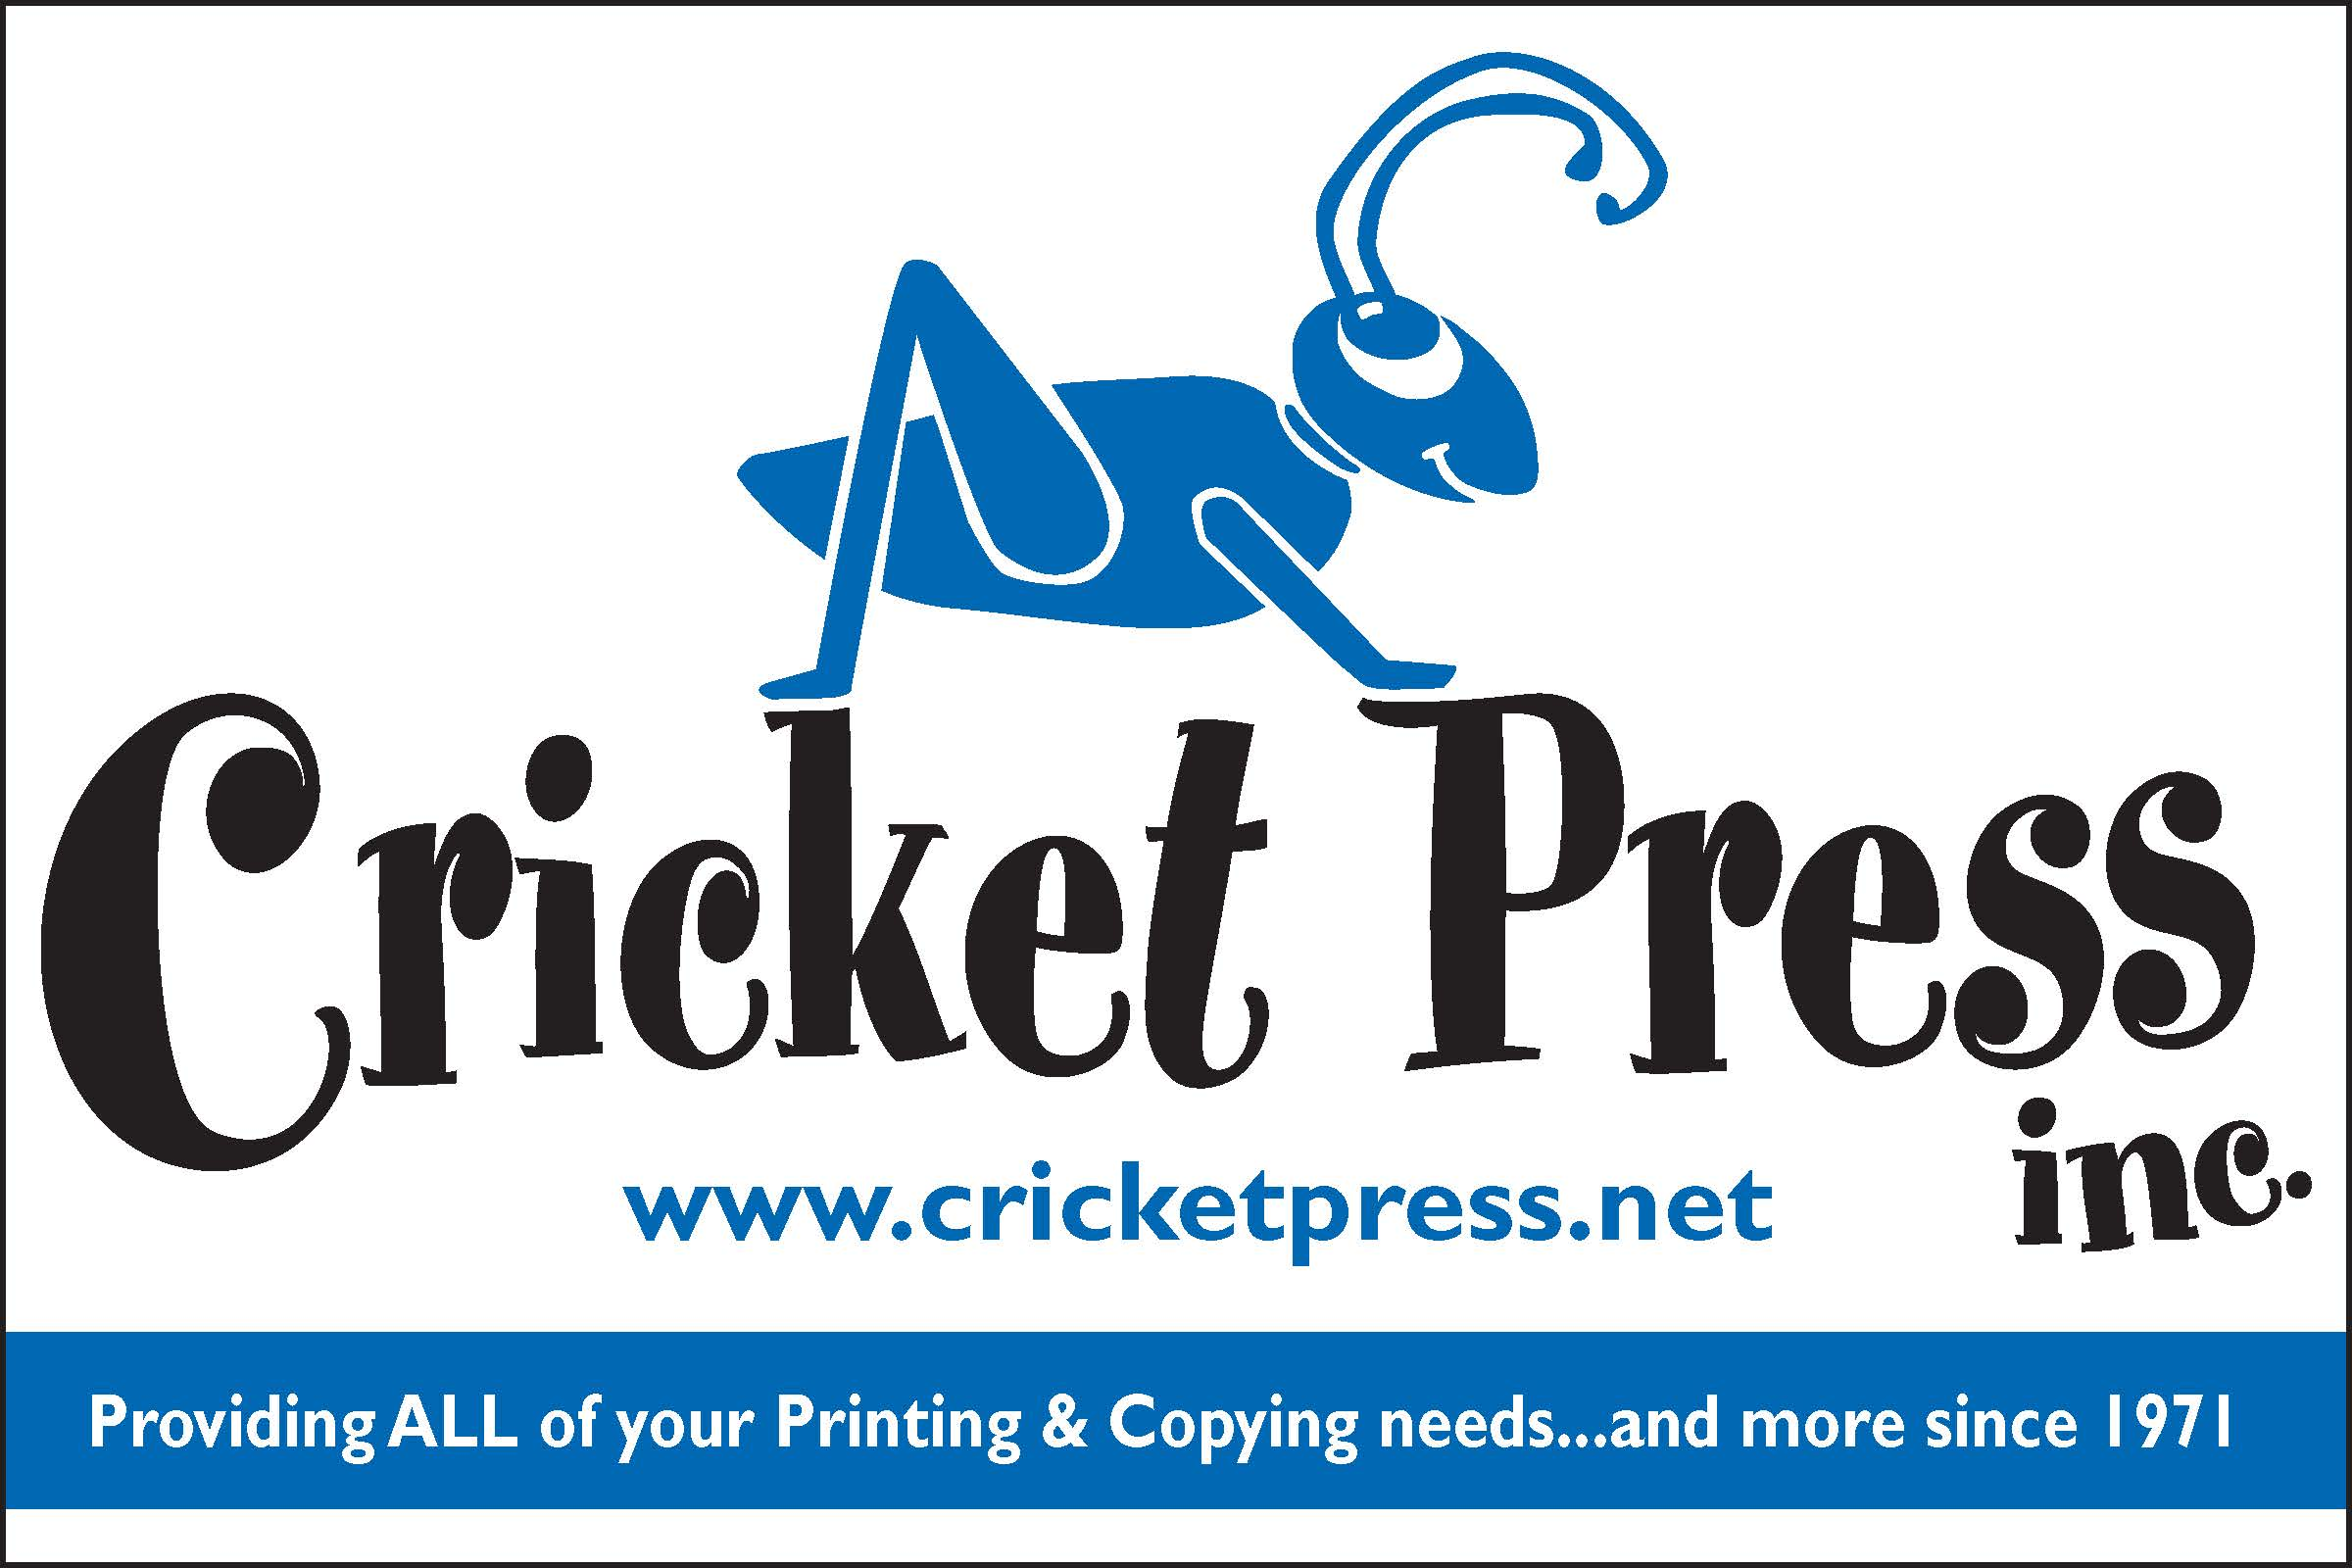 Cricket Press, Inc.